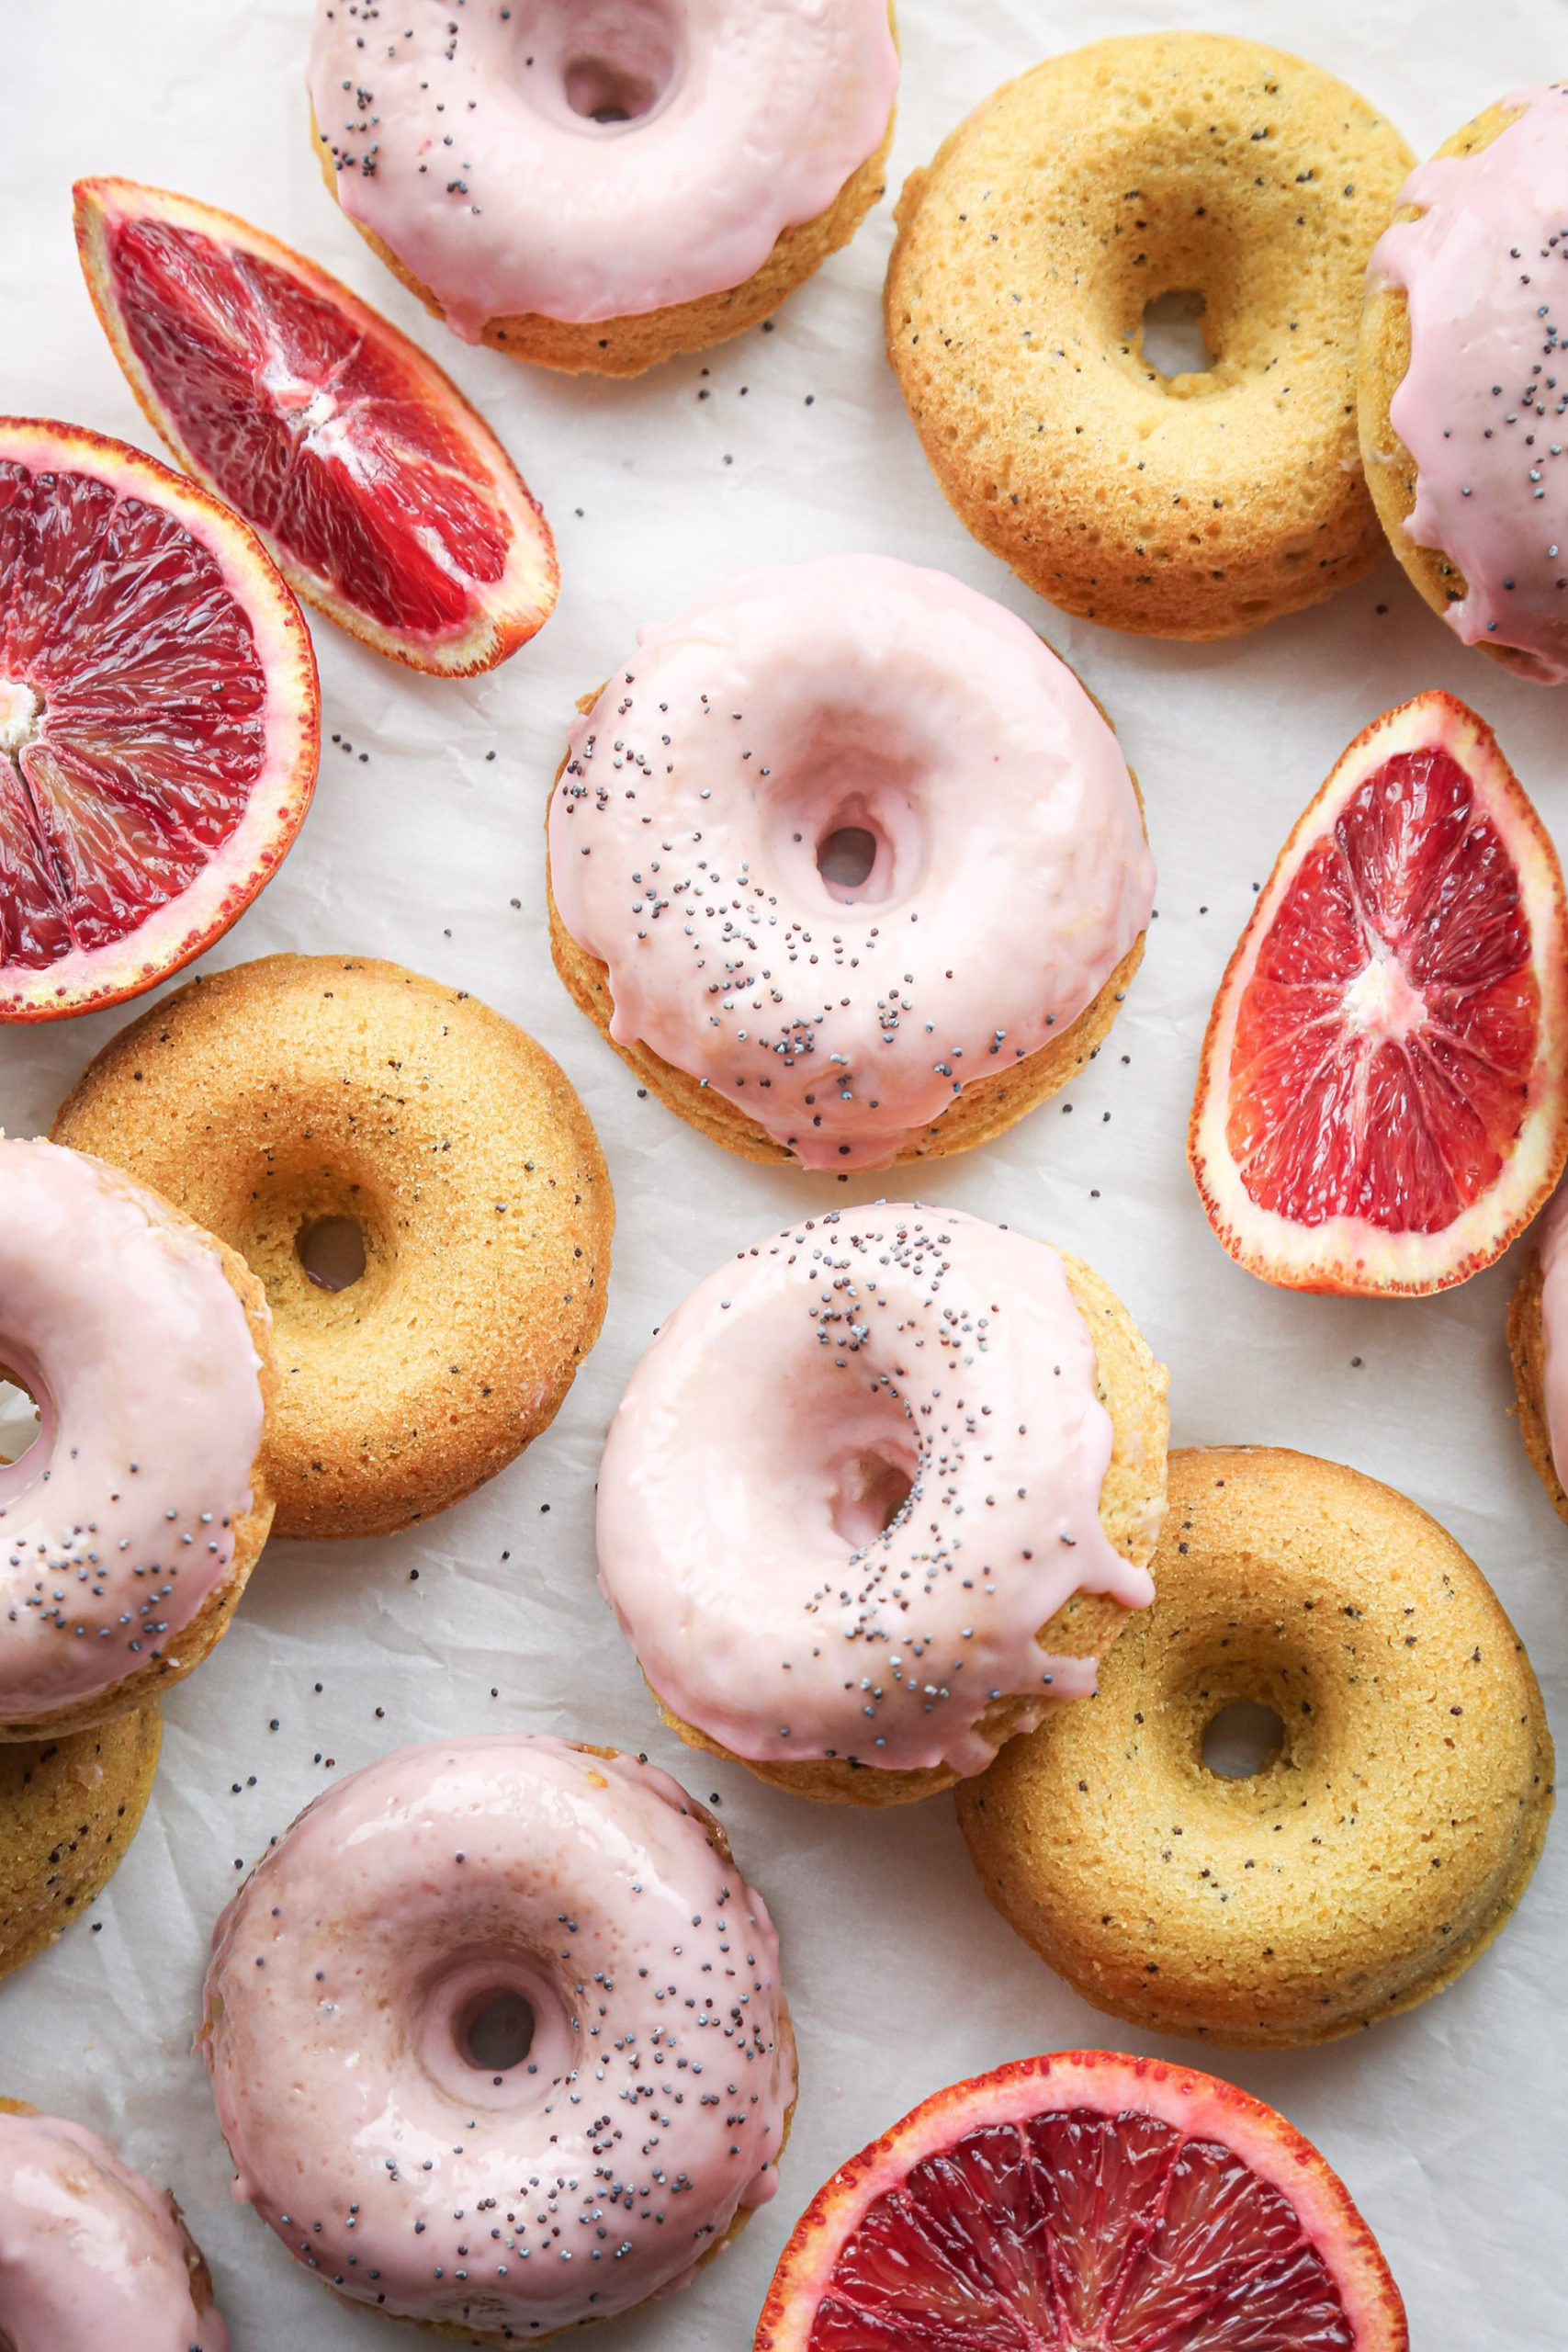 Blood Orange Poppy Seed Donuts | Vegan and gluten-free option included!